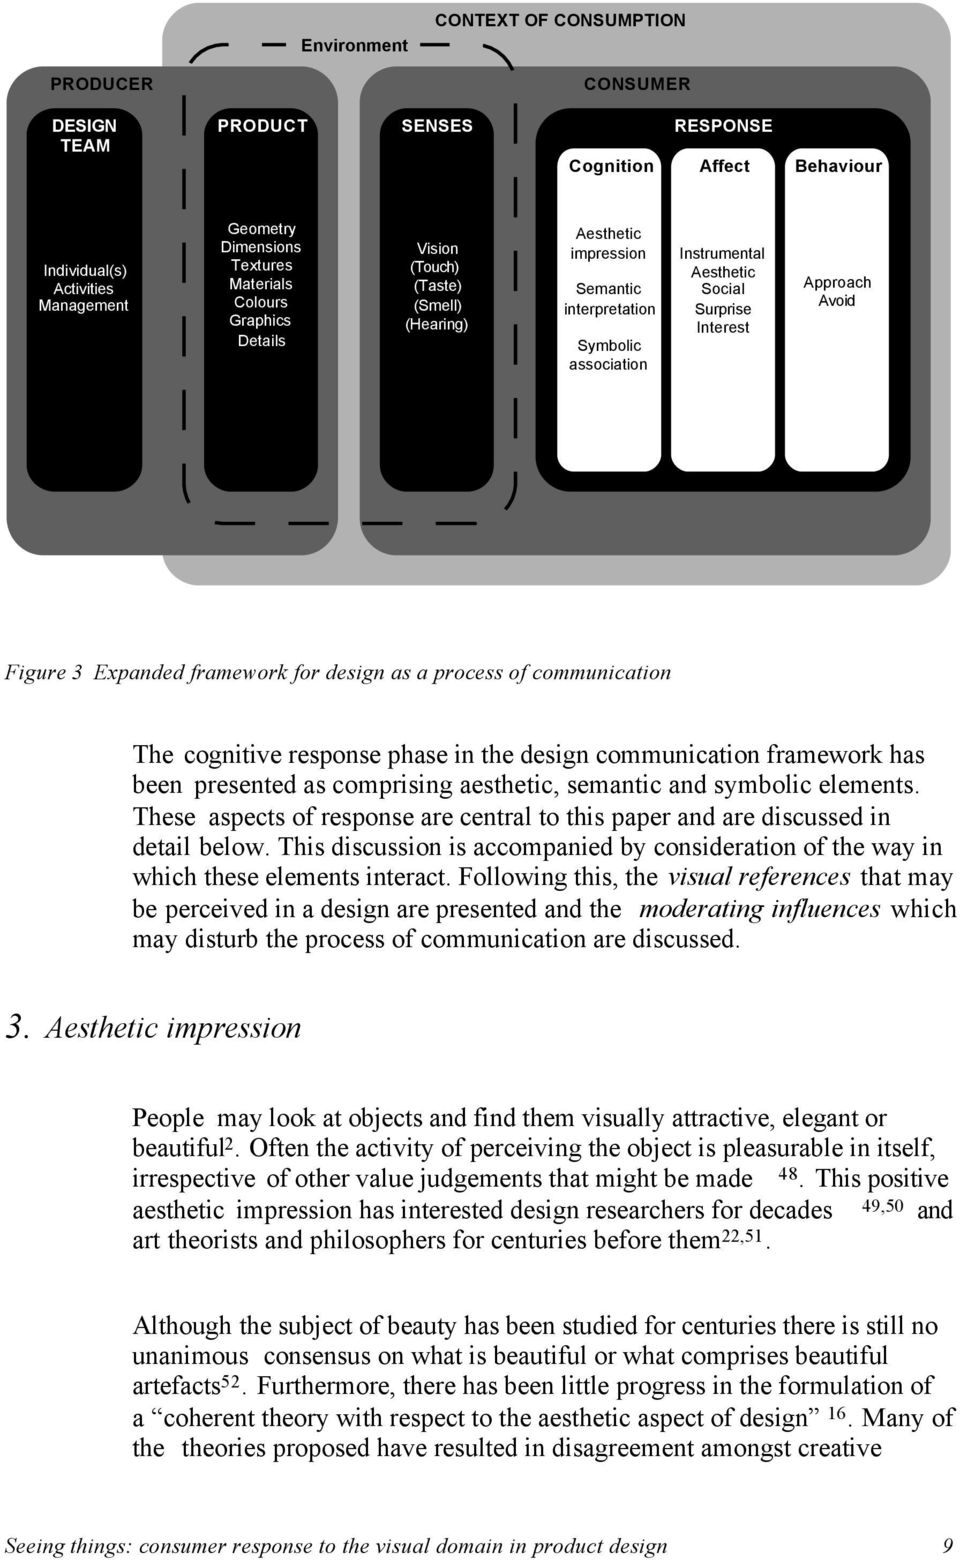 Expanded framework for design as a process of communication The cognitive response phase in the design communication framework has been presented as comprising aesthetic, semantic and symbolic